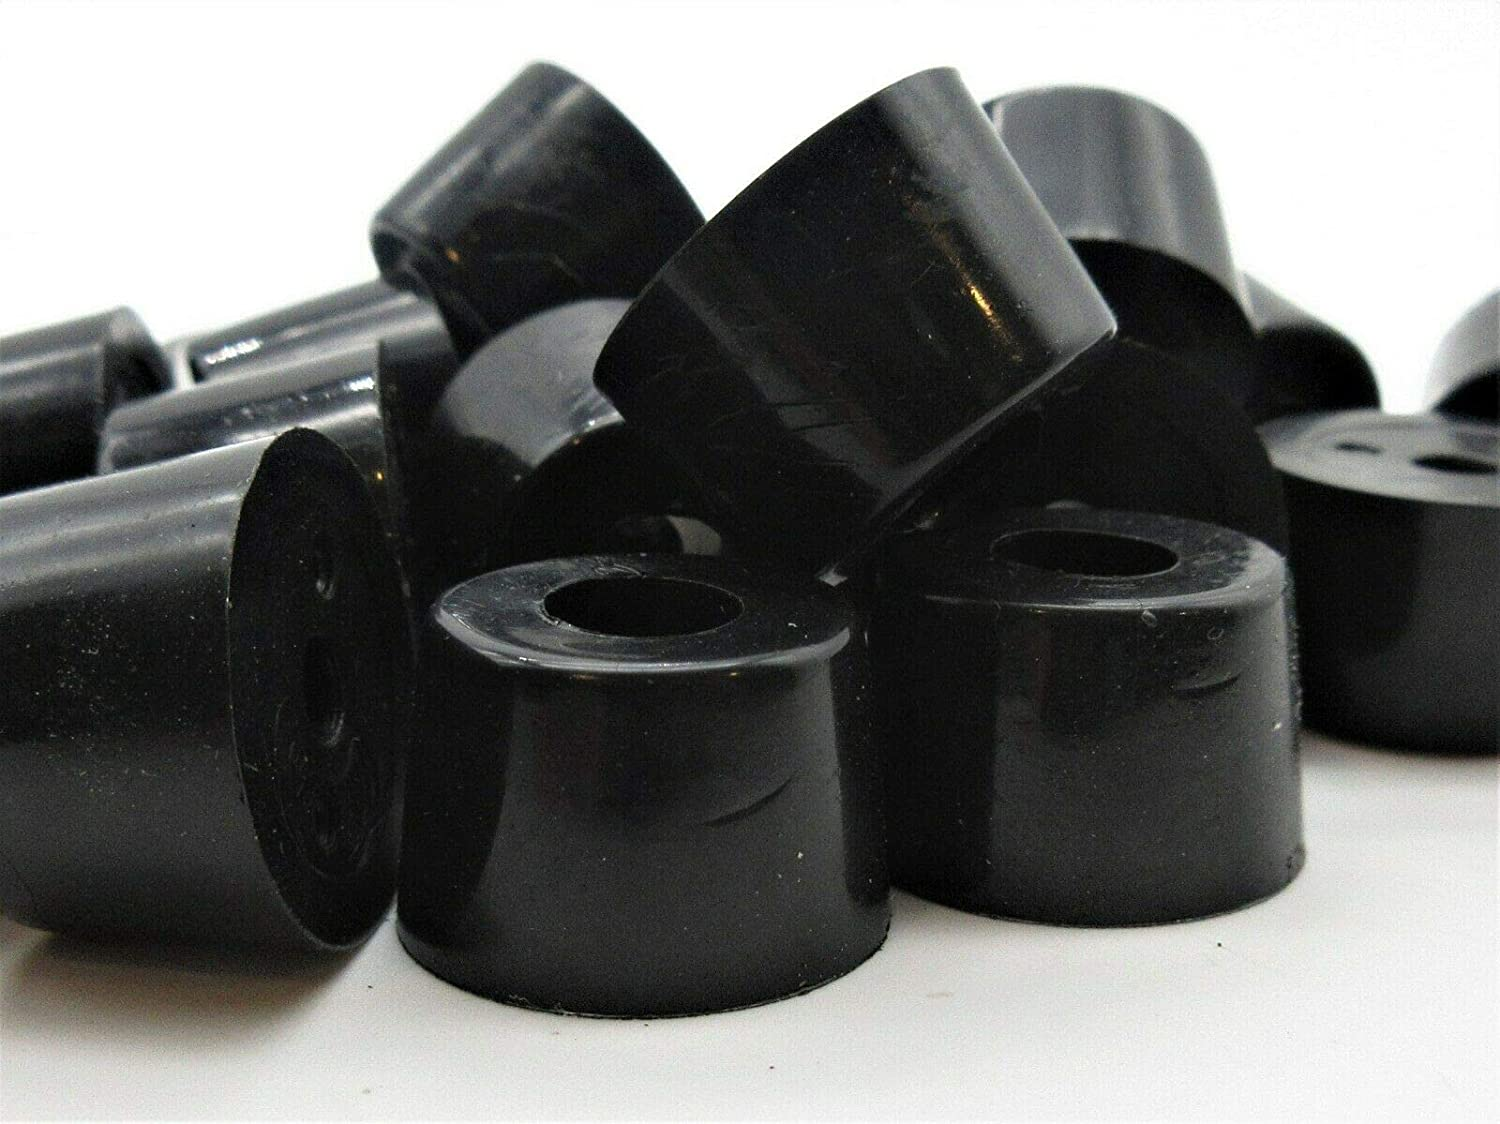 4 Sizes Rubber Feet for Subwoofer Boxes 5 D 3 Max 74% OFF 12 8